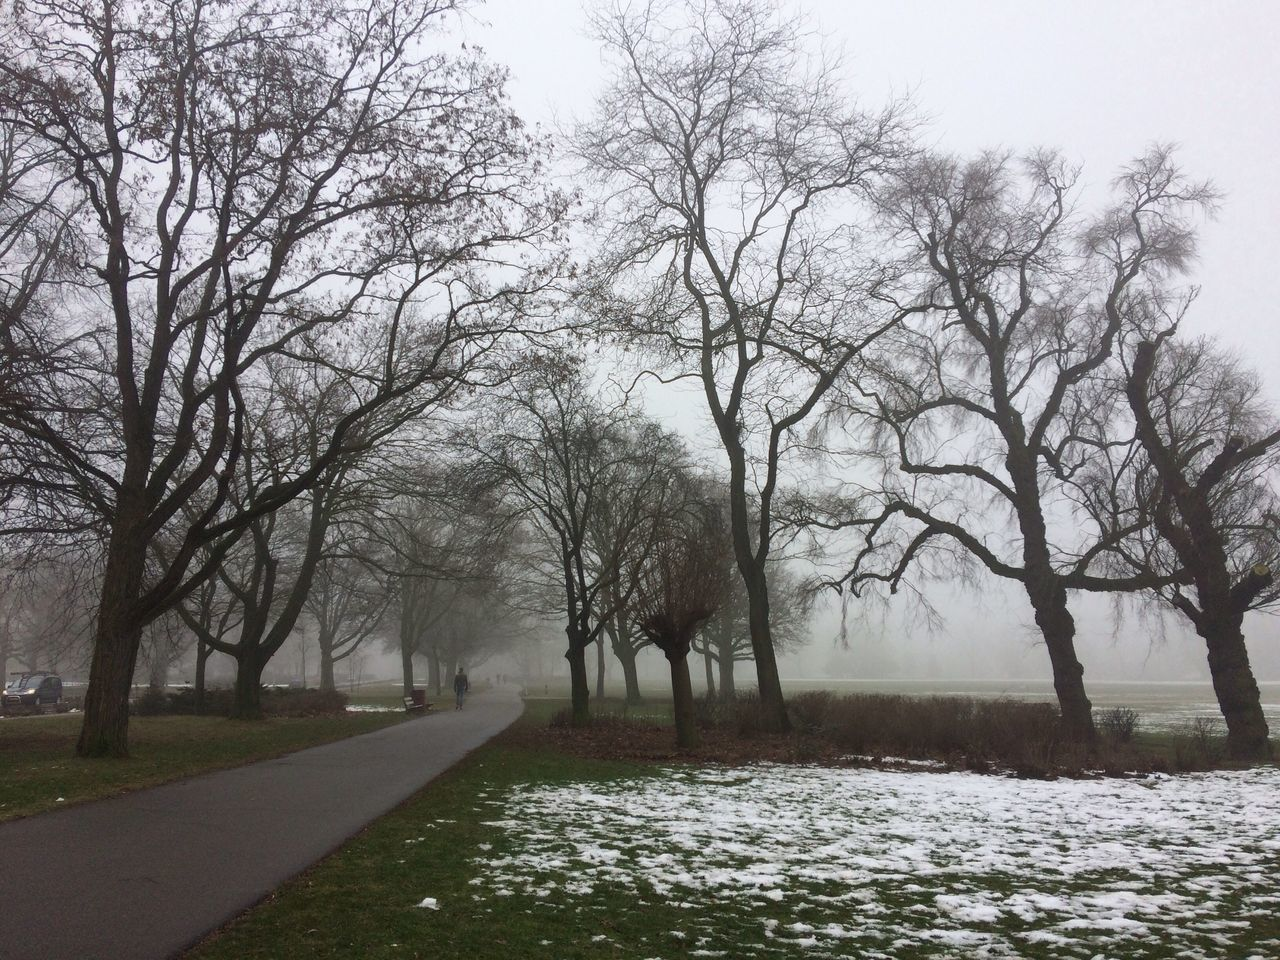 Tree Nature Bare Tree Tranquility Tranquil Scene Scenics Beauty In Nature Branch No People Outdoors Sky Day Foggy Foggy Weather Foggy Landscape Trees In The Fog Lone Walker Miles Away